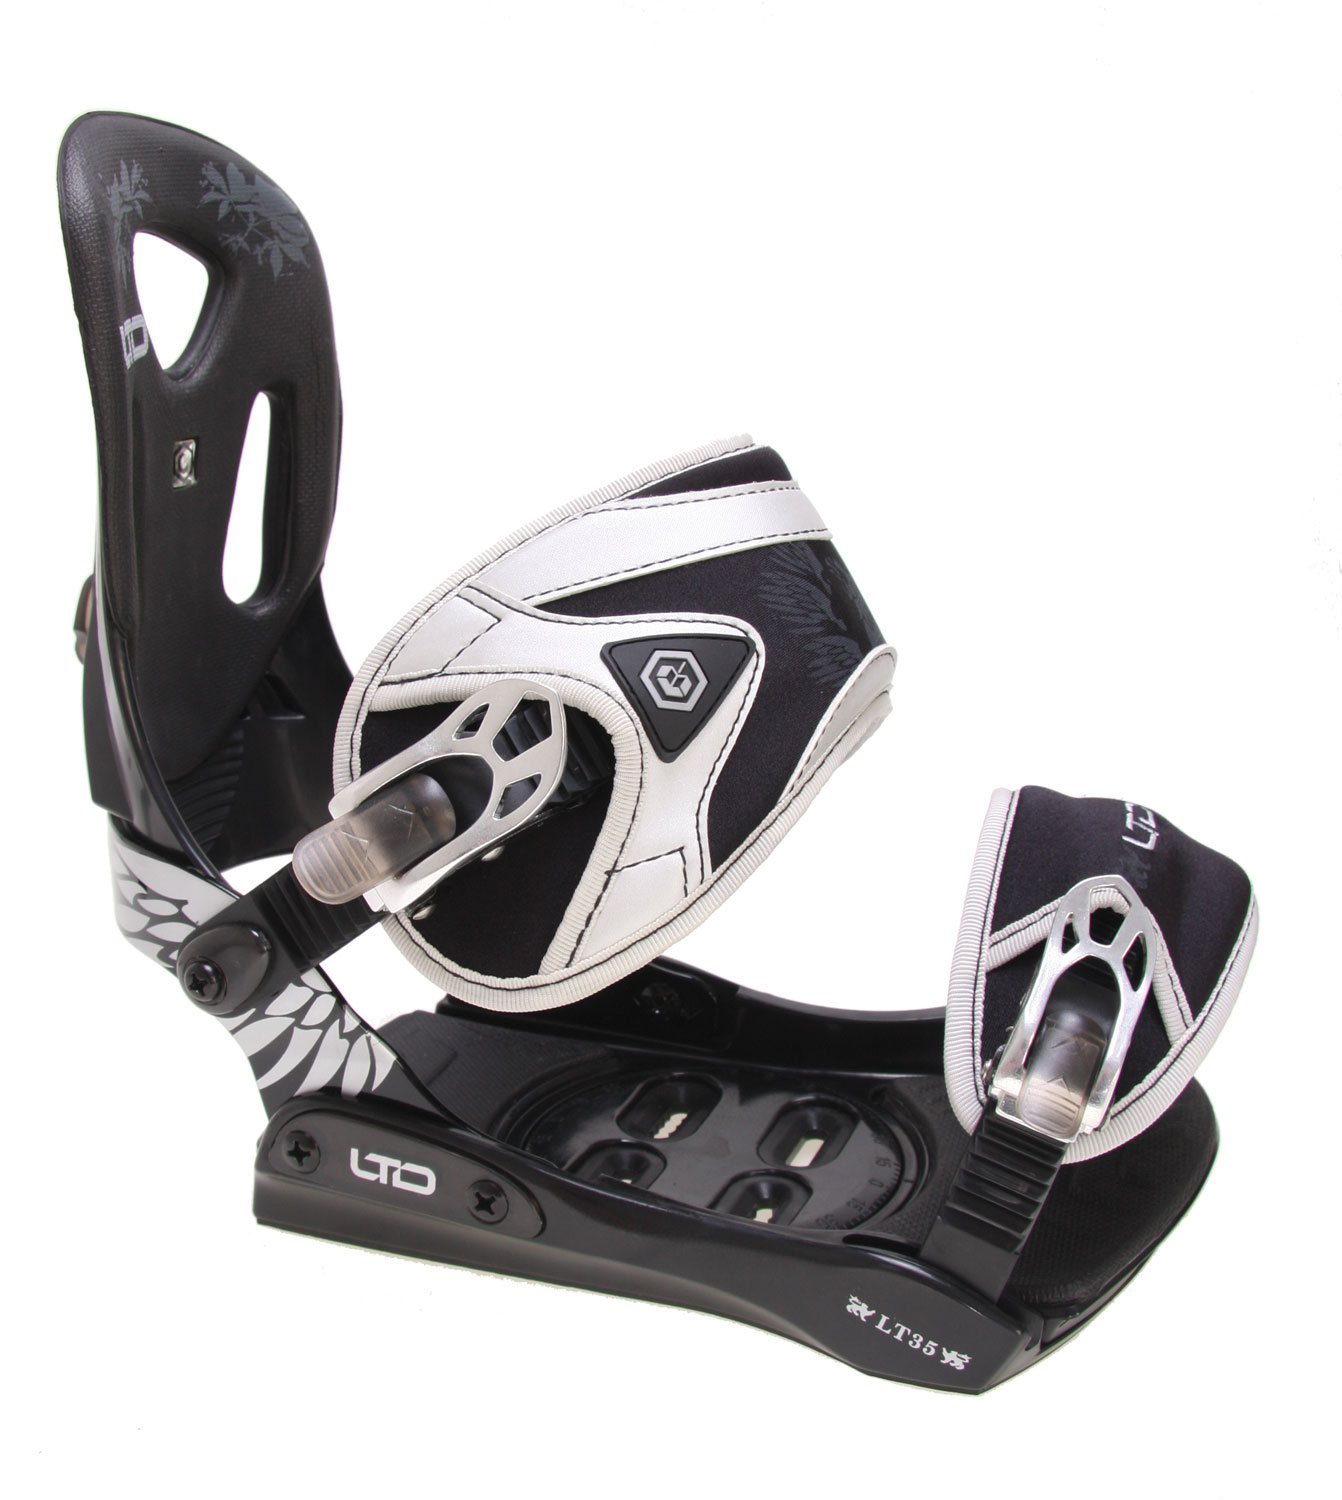 Snowboard Get versatile all mountain performance with LTD's LT35 snowboard bindings. The aluminum heelcup is adjustable, so you get a clamp down fit. The plastic baseplate is lightweight and ensures a responsive ride. The toe ramps are adjustable for a snug fit, and EVA molding on the heel and toe ramps provides comfortable padding and comfort. The aluminum 3 tooth ratchets can take a beating, and the ladders adjust tool free so you get a perfect fit on the fly. LTD has your back with their LT350 snowboard bindings.Key Features of The LTD LT35 Snowboard Bindings: All Mountain Performance Auminum Adjustable Heelcup Plastic Anatomical Baseplate Adjustable Toe Ramps Molded EVA Toe and Heel Ramp Pads Aluminum Anatomical 3 Tooth Ratchets NEW!! Tool Free Quick Adjustable Toe and Ladder Straps - $65.95